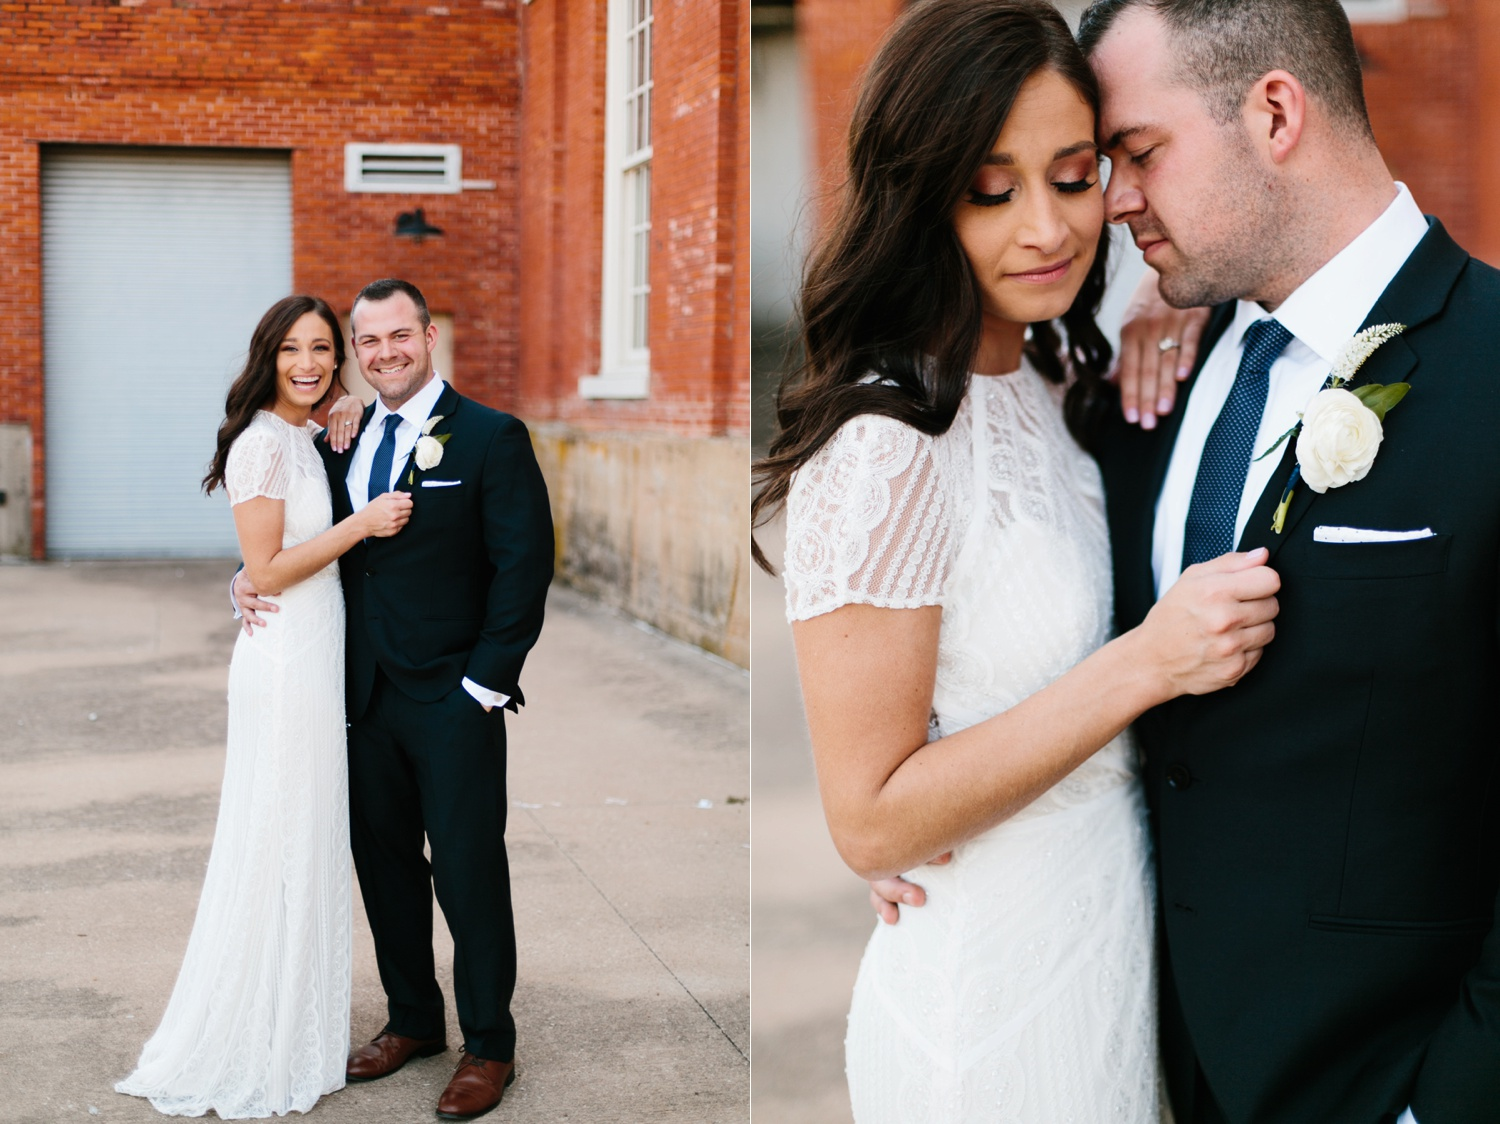 Kadee + Tyler | a raw, emotional wedding at the Filter Building on White Rock Lake in Dallas, TX by North Texas Wedding Photographer, Rachel Meagan Photography 083